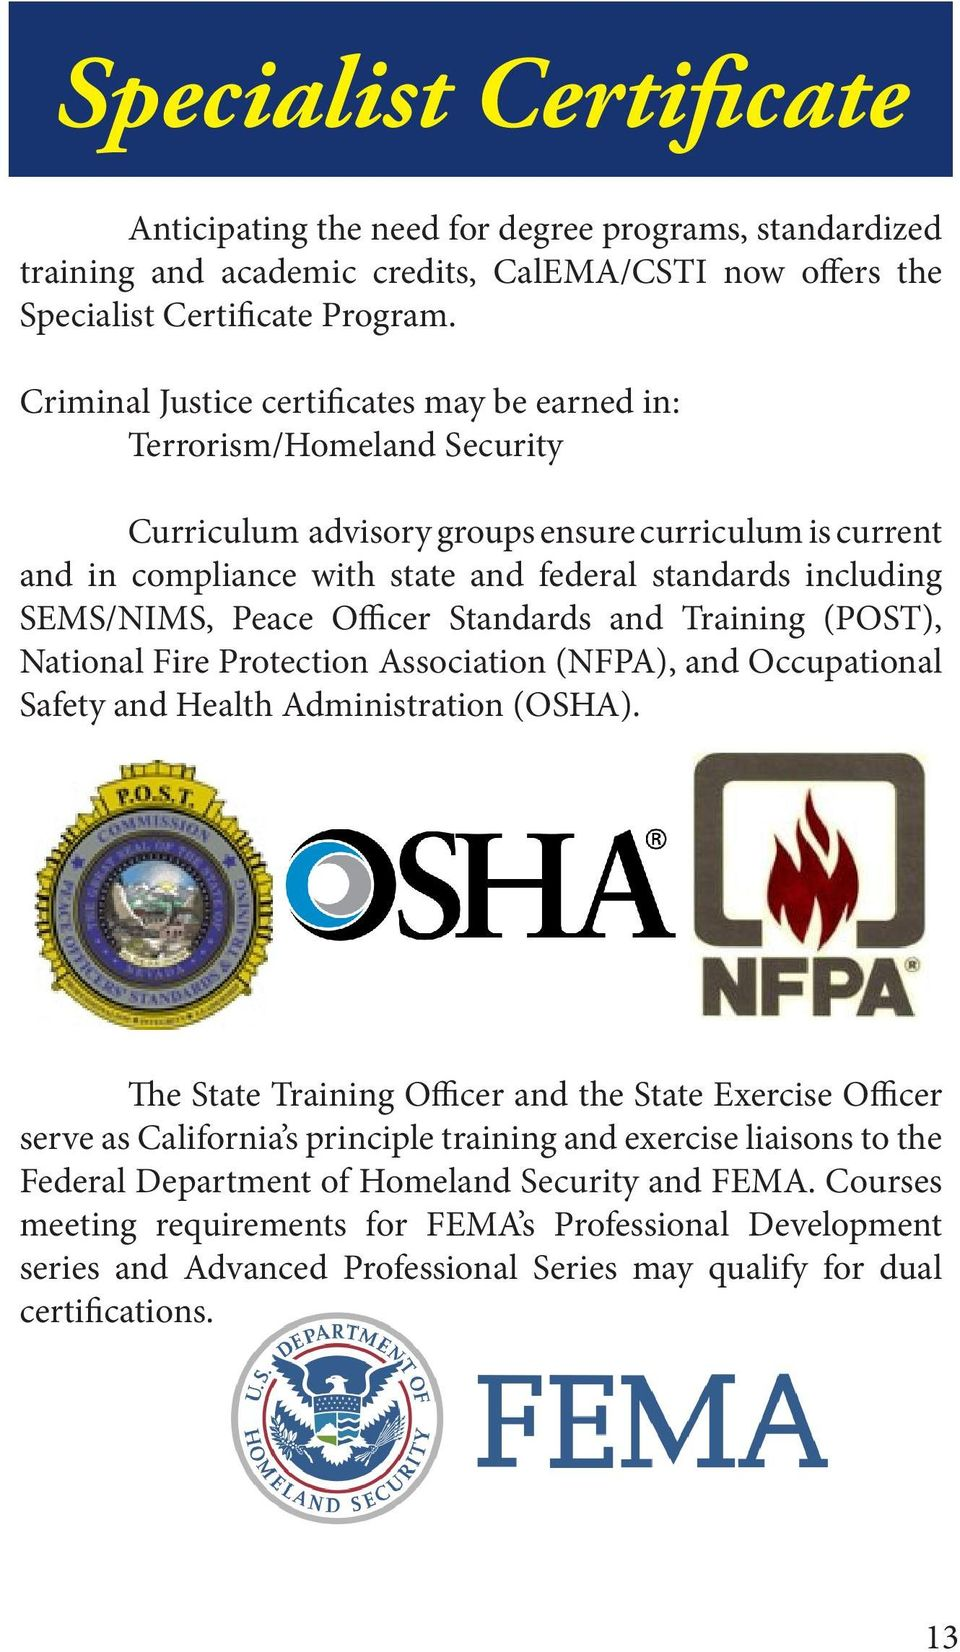 Peace Officer Standards and Training (POST), National Fire Protection Association (NFPA), and Occupational Safety and Health Administration (OSHA).